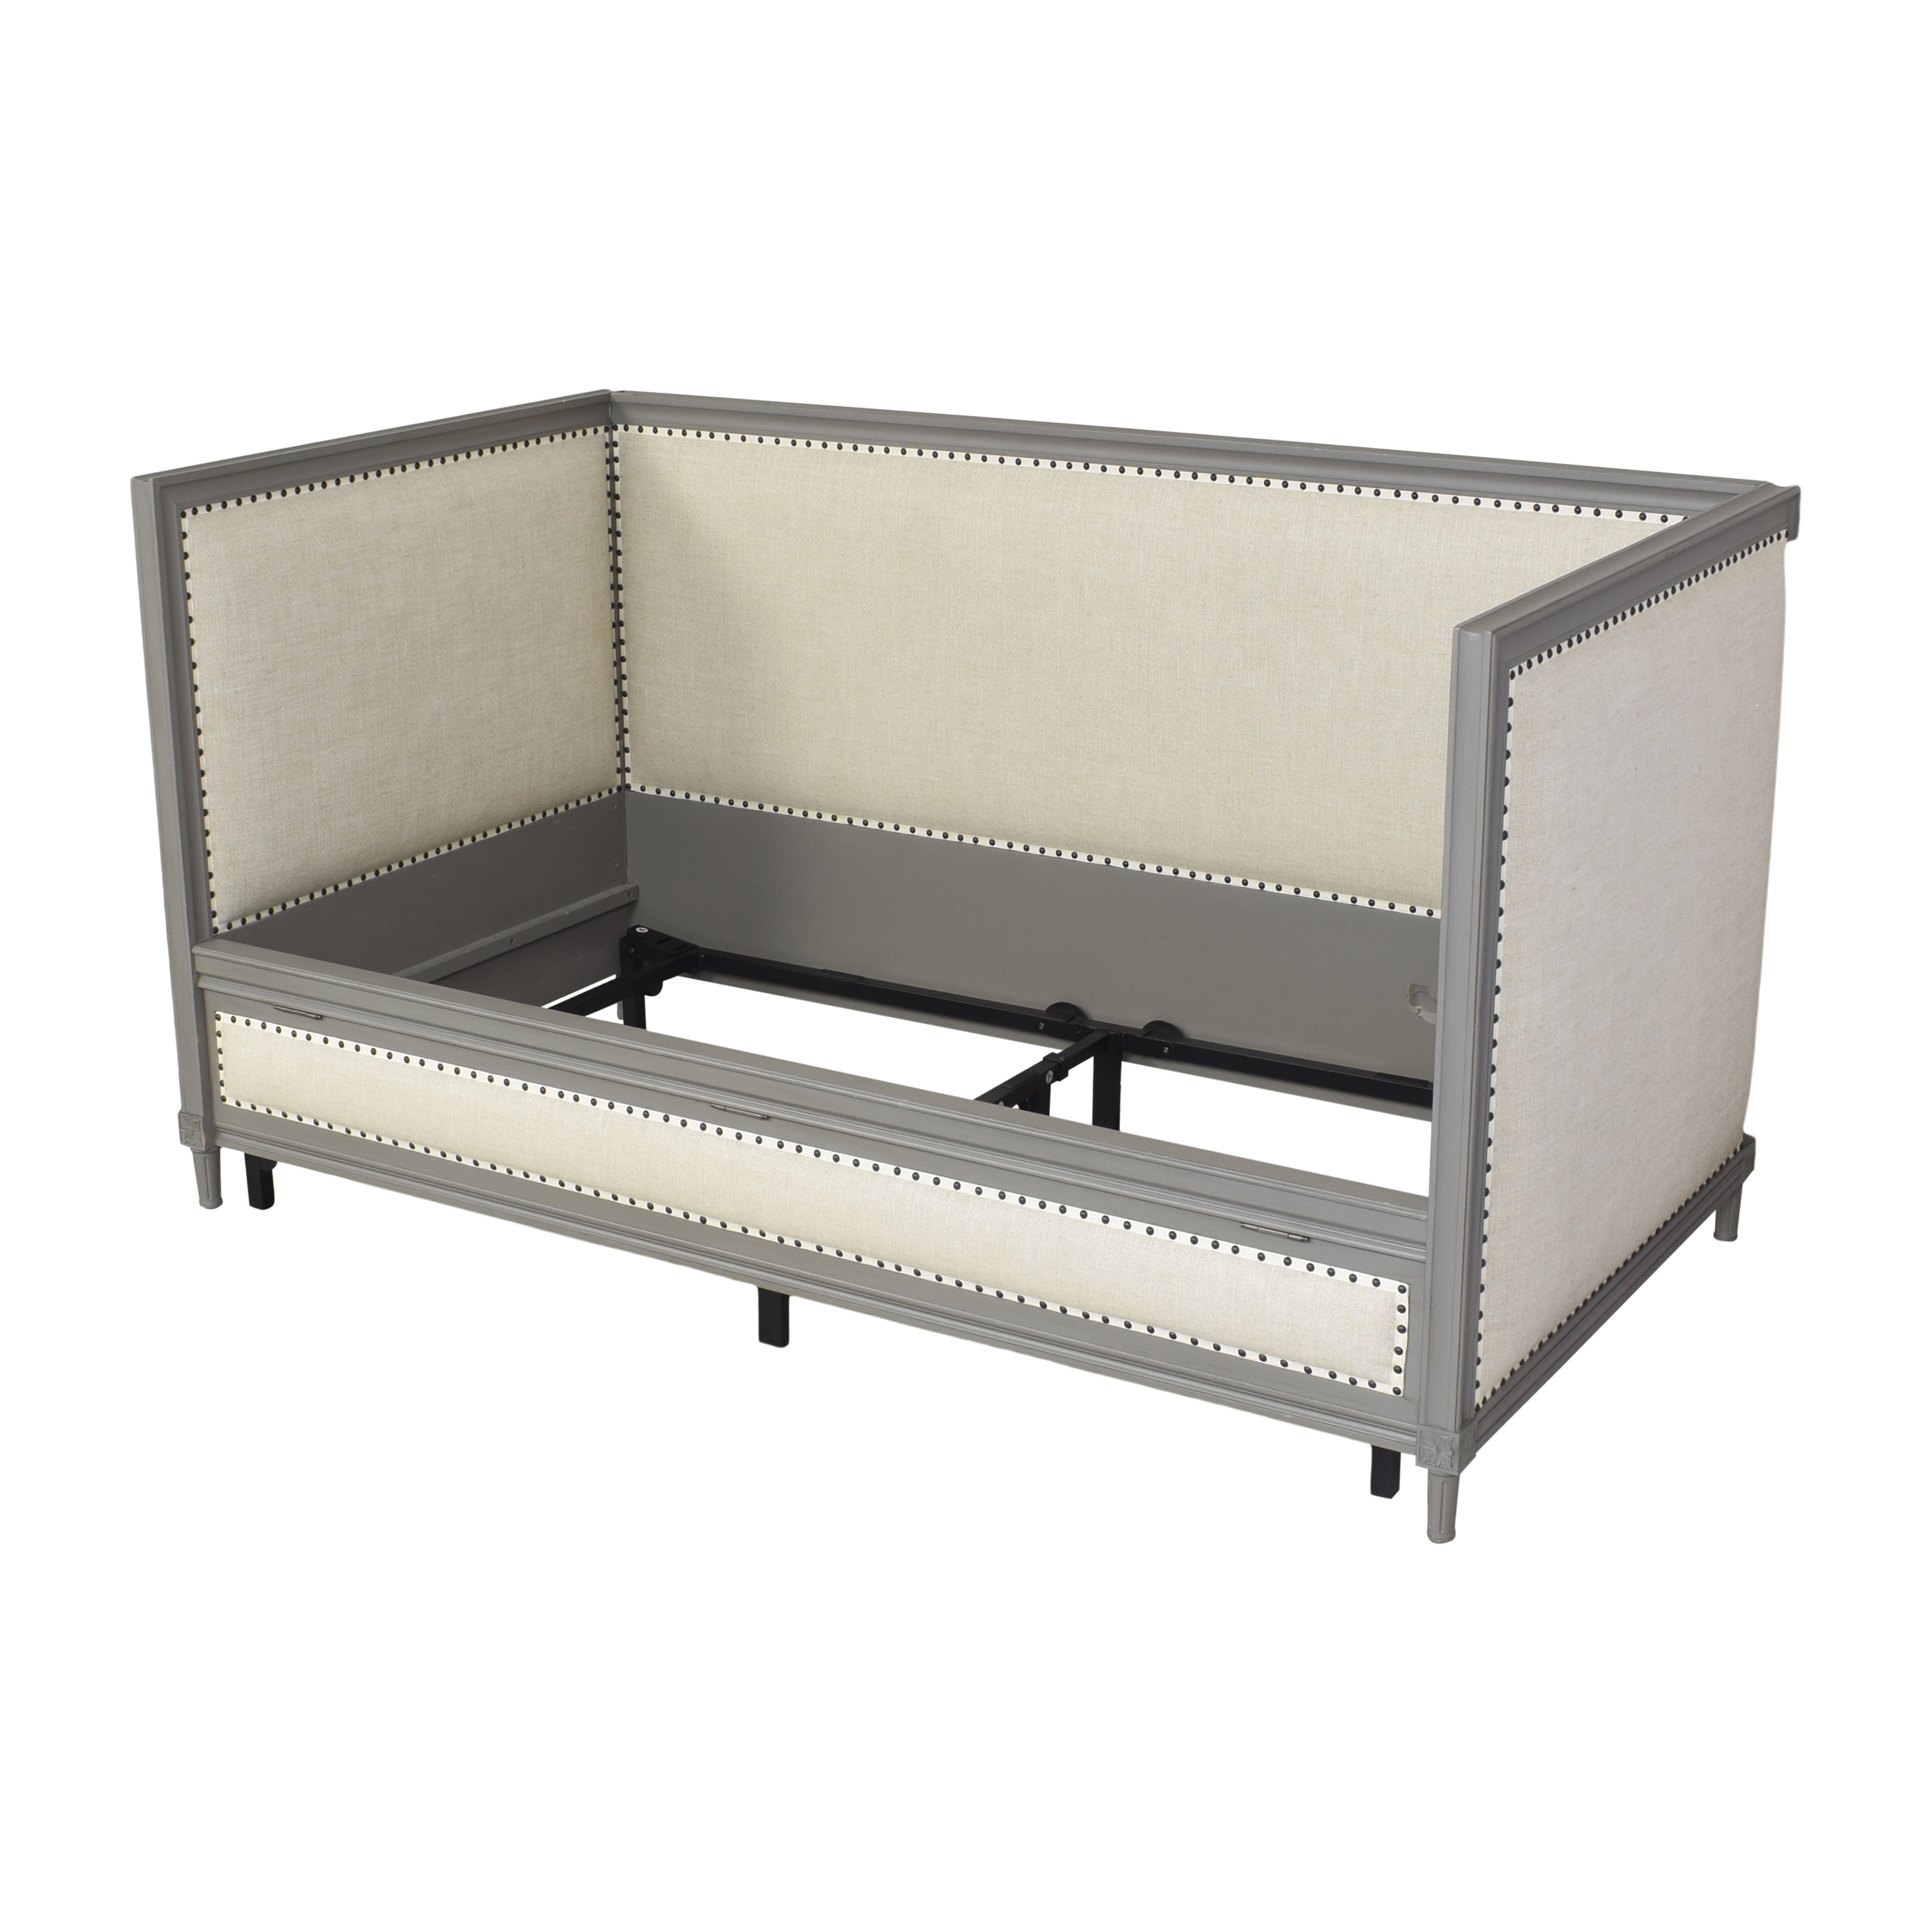 Restoration Hardware Restoration Hardware Maison Twin Panel Daybed used